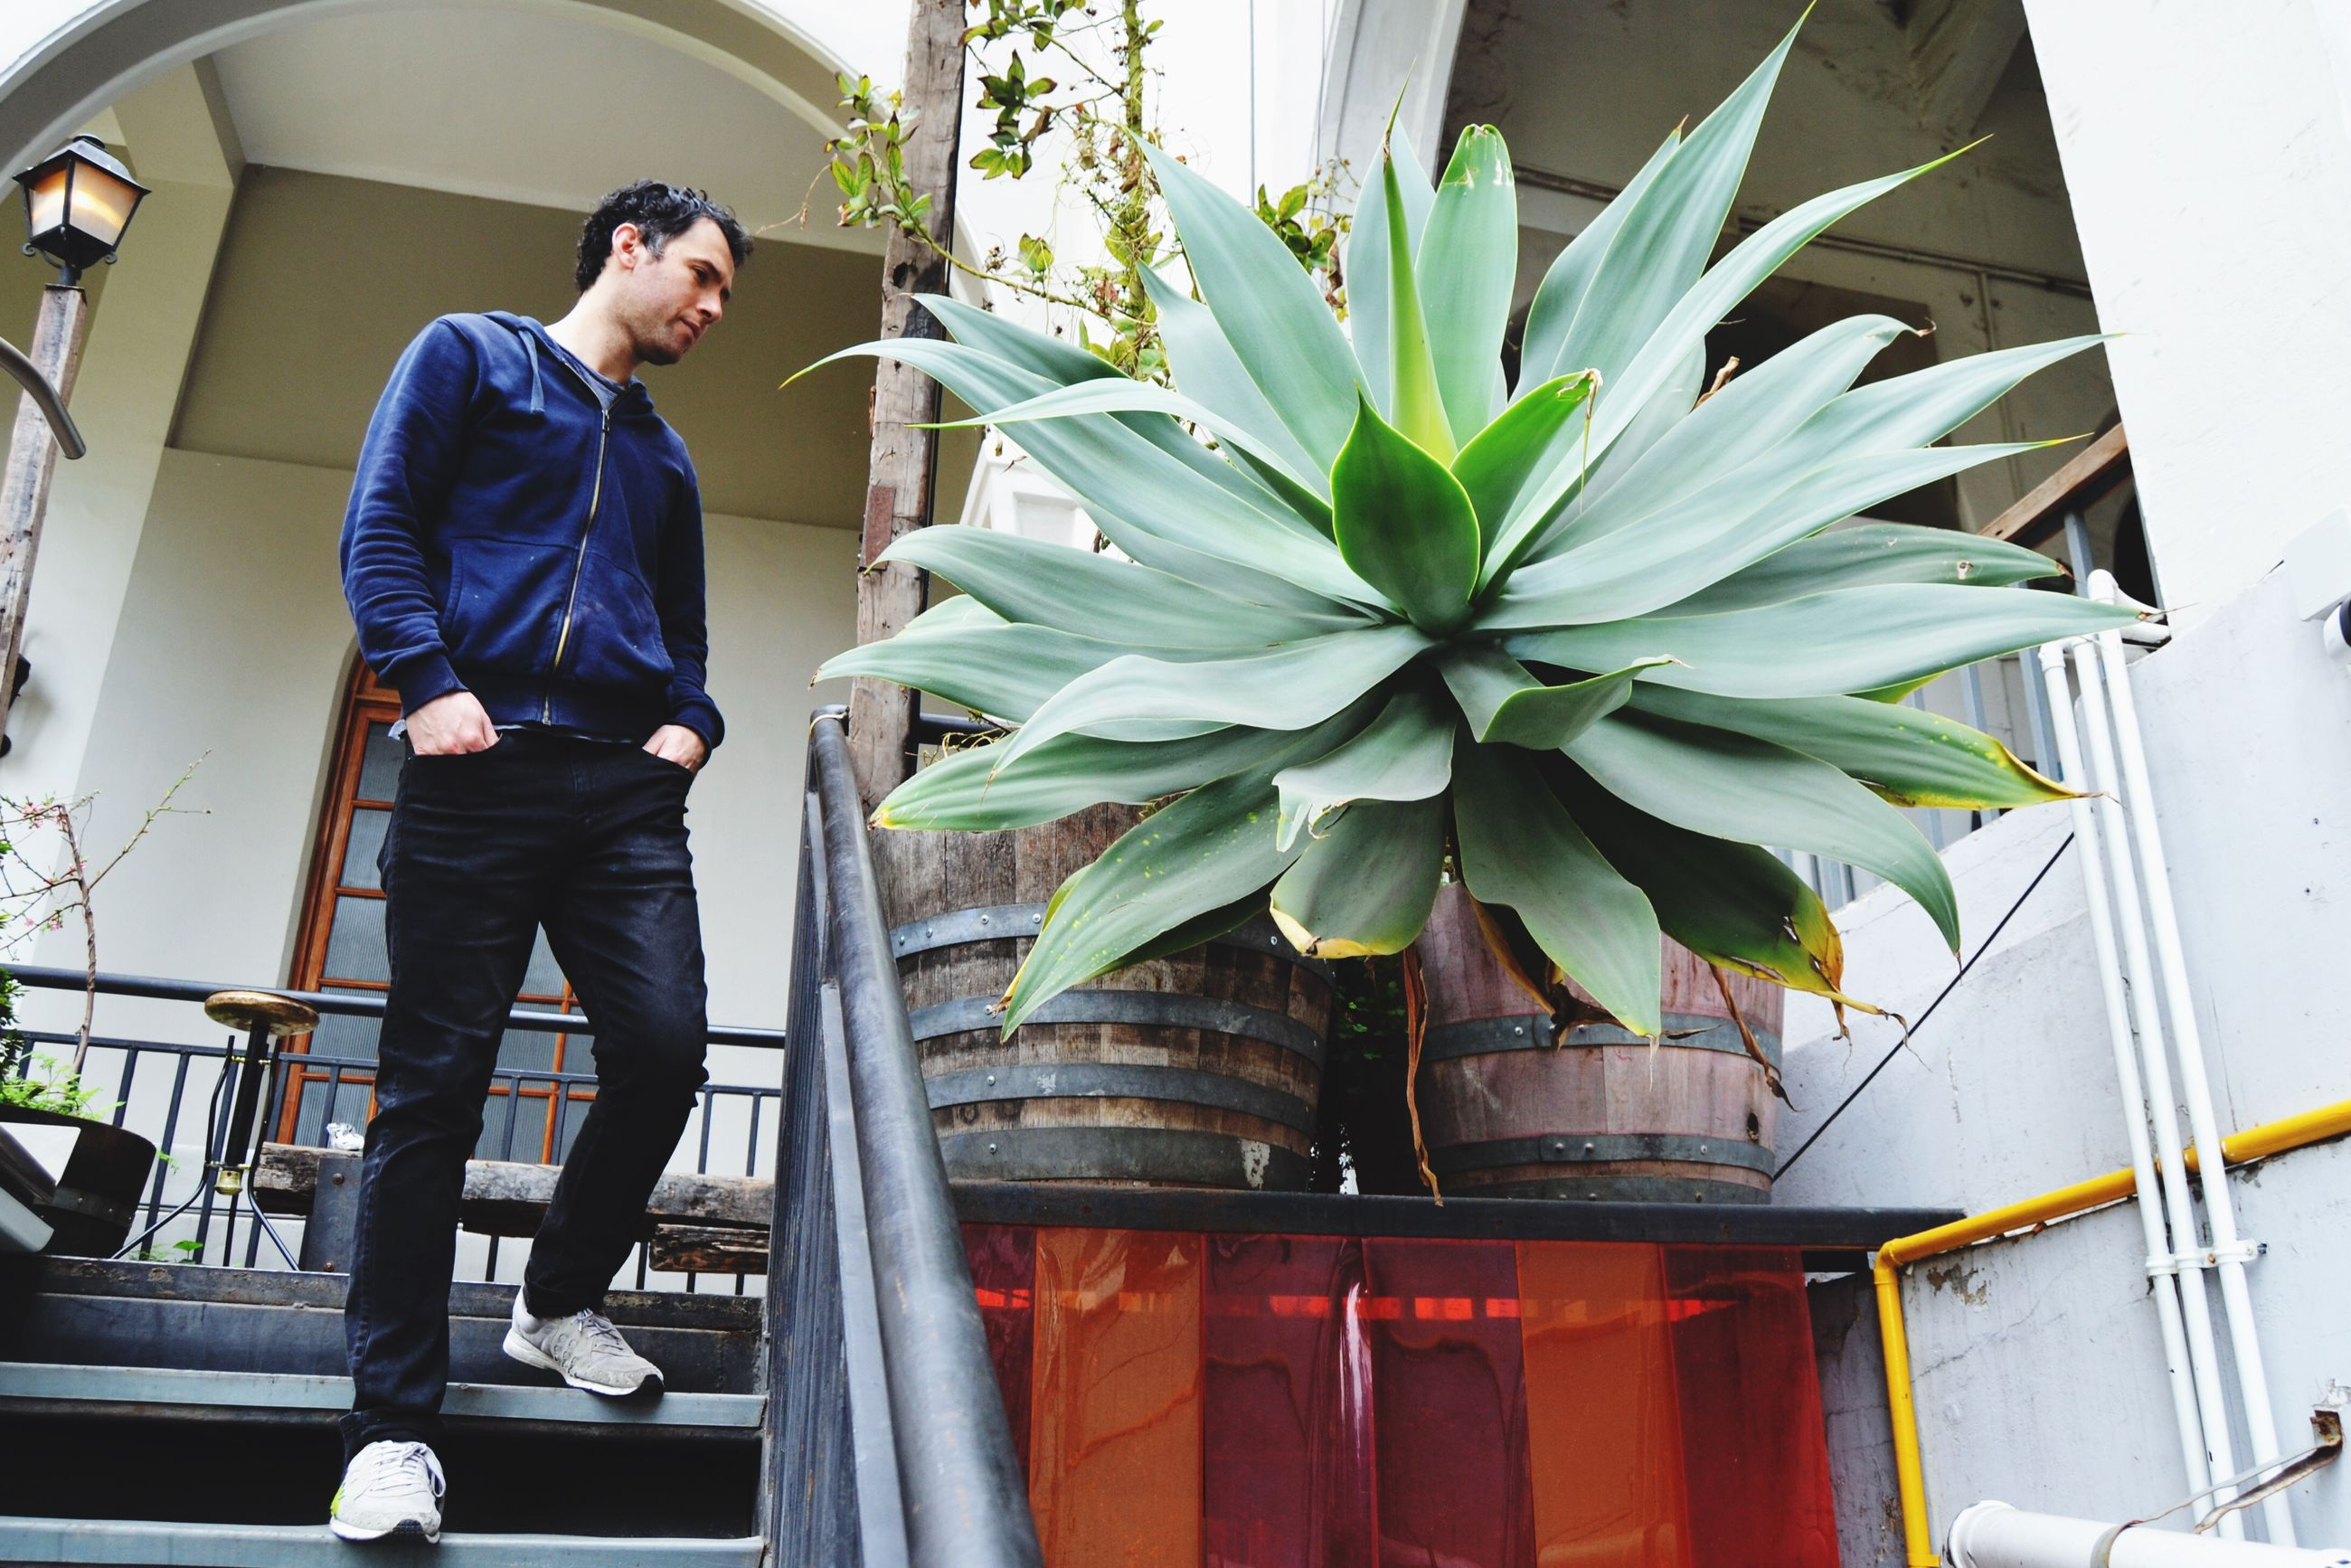 full length, potted plant, growth, casual clothing, plant, architecture, person, young adult, day, outdoors, green color